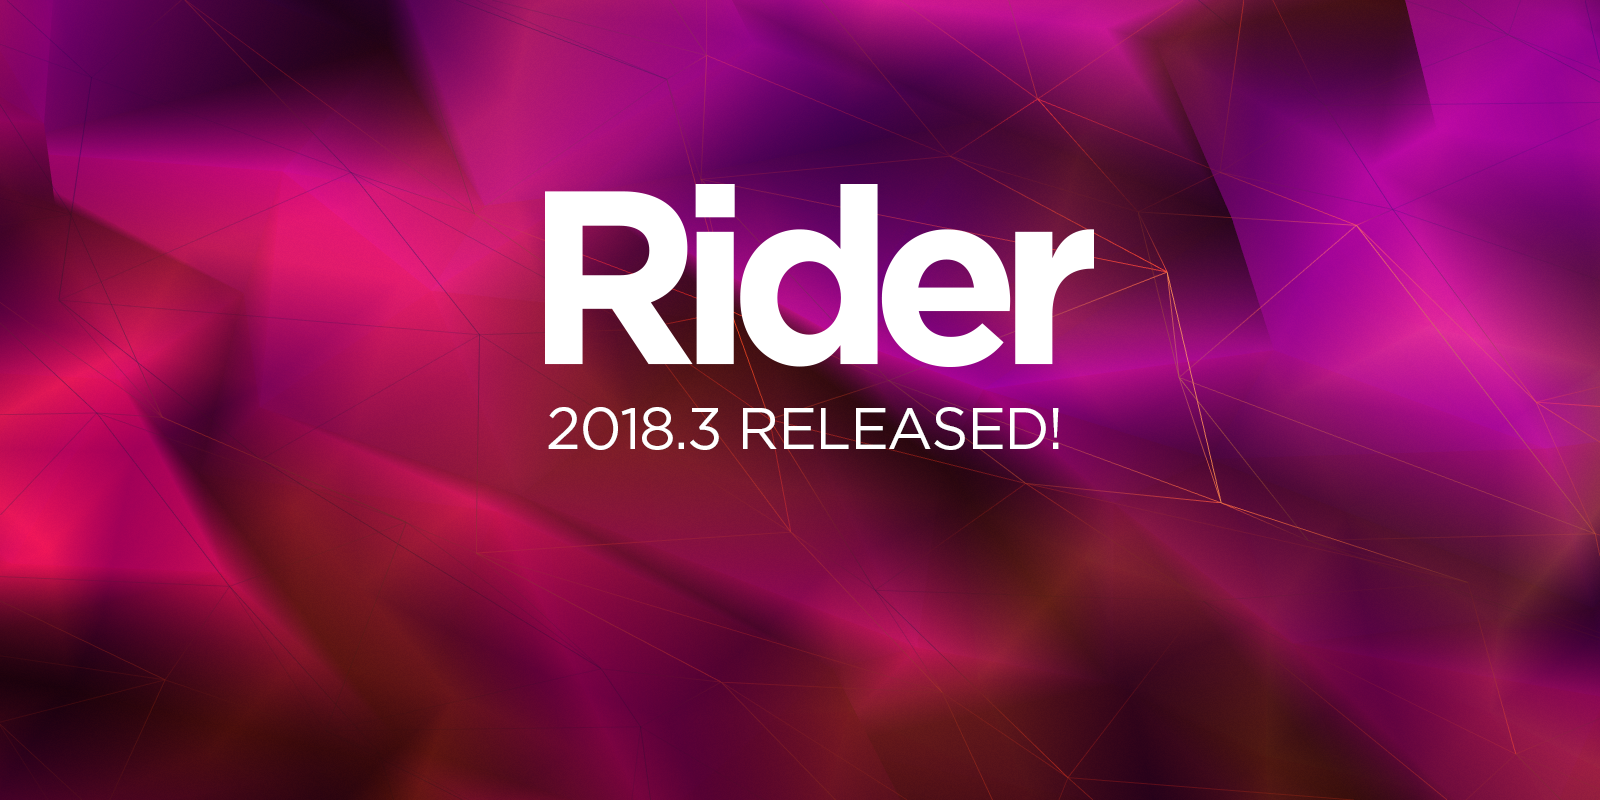 Rider 2018.3 maintenant disponible